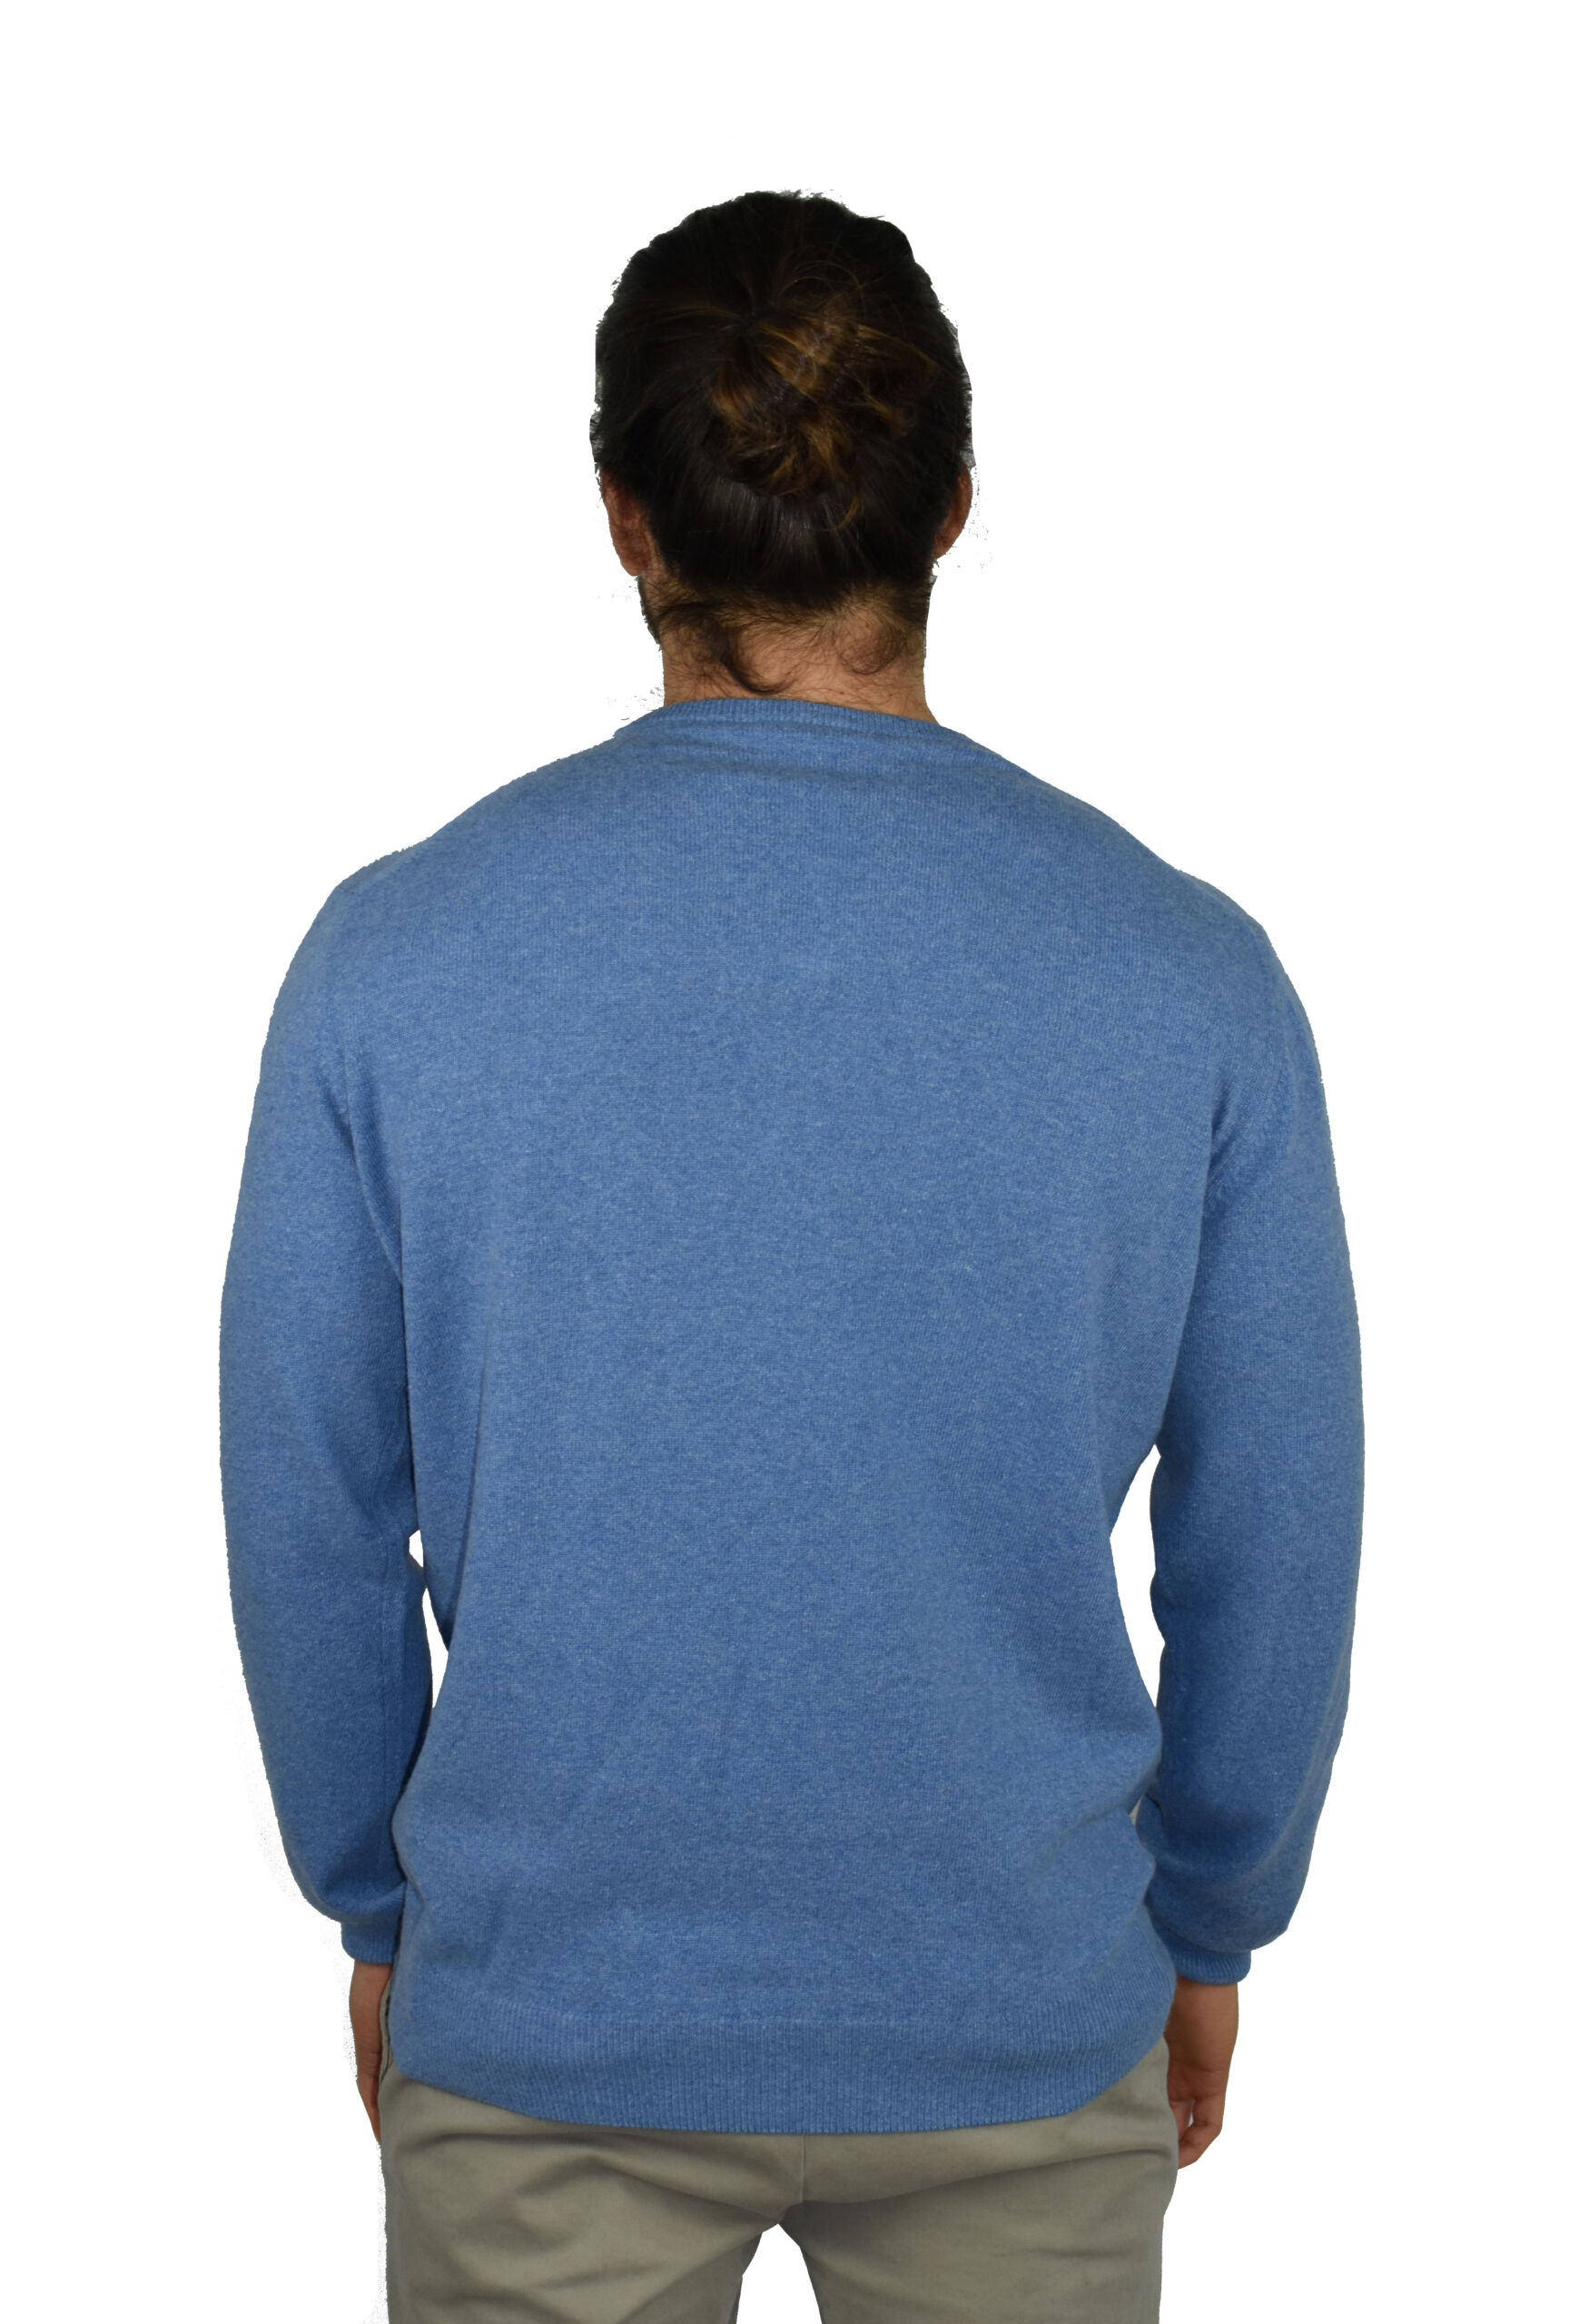 made in italy 30% Lana 30% Viscosa 30% Poliammide 10% Cashmere